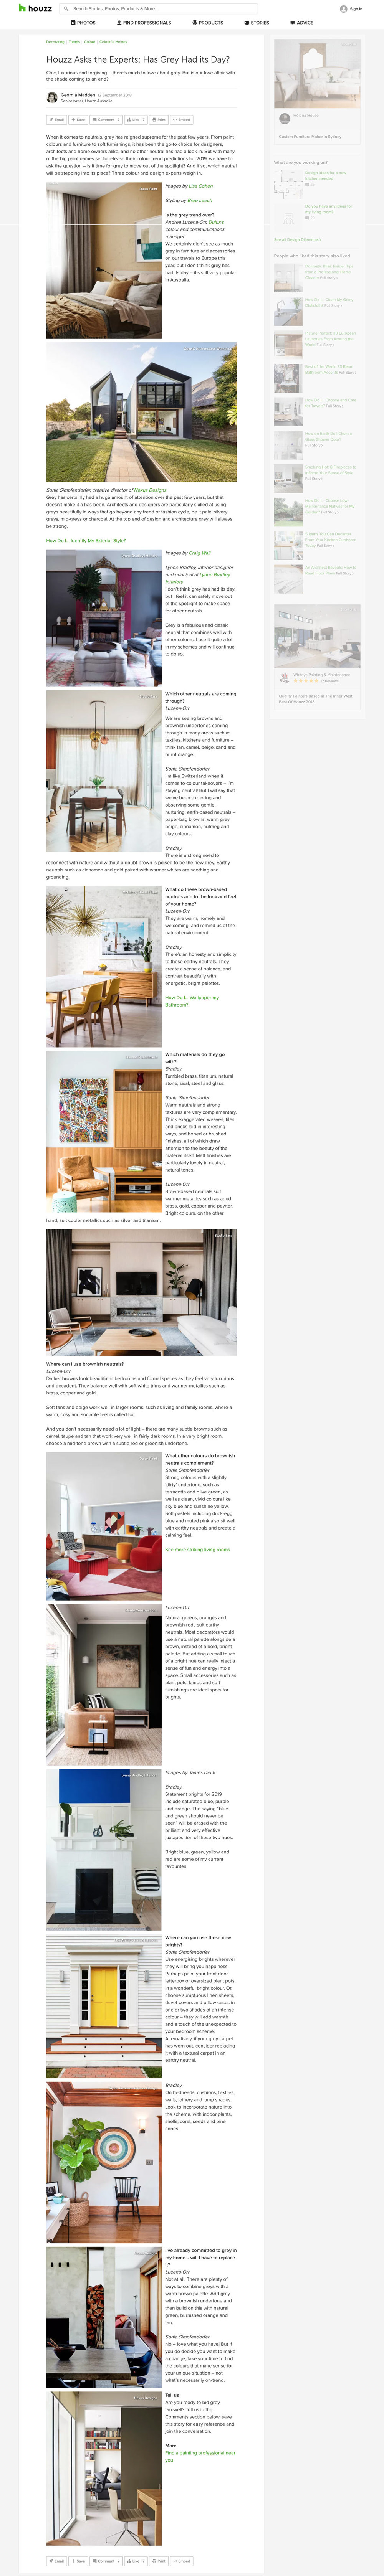 screencapture-houzz-au-ideabooks-113270705-list-houzz-asks-the-experts-has-grey-had-its-day-2018-09-17-15_18_40-LR.jpg